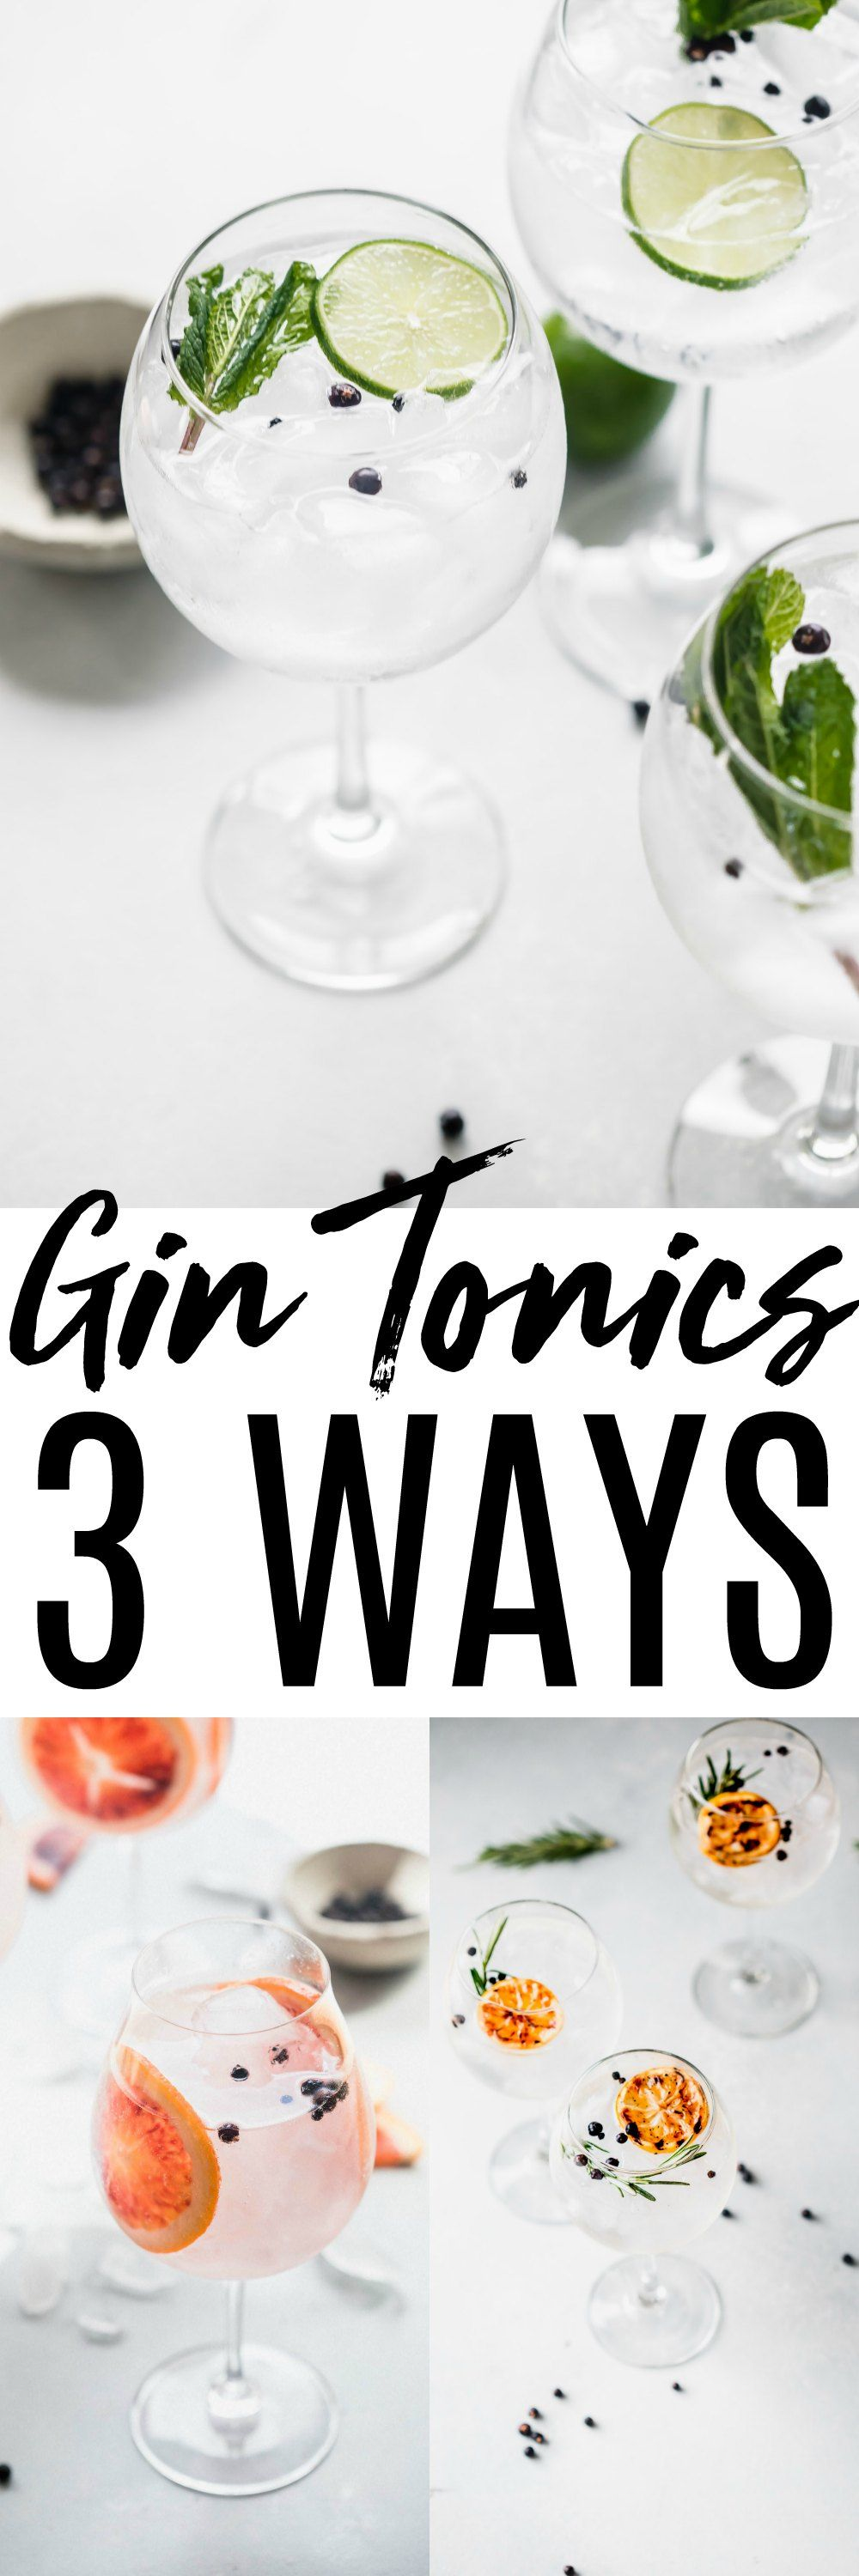 This Gin and Tonic recipe makes perfecting the gin & tonic